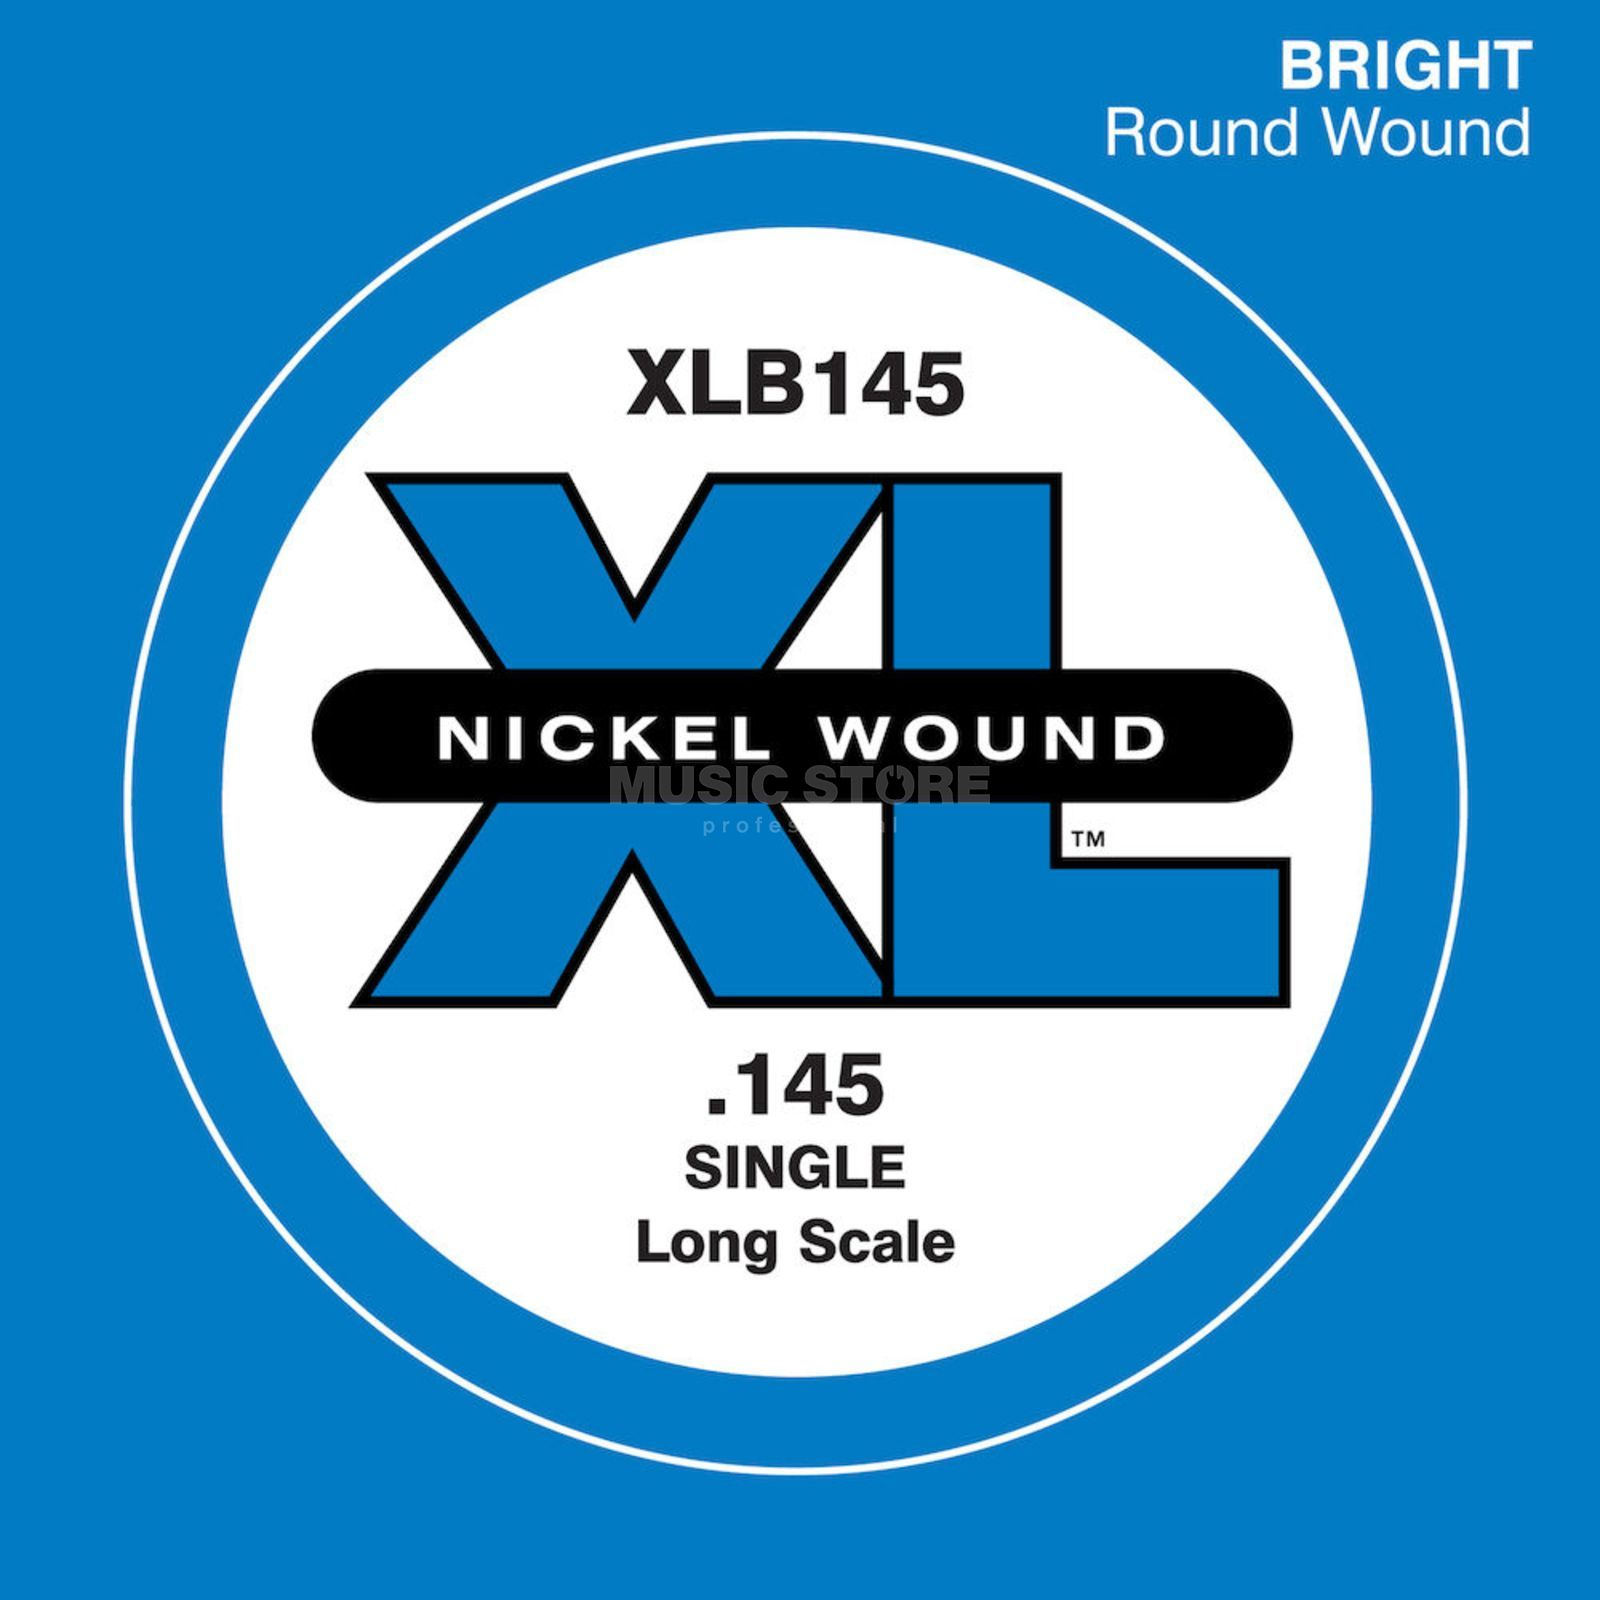 D'Addario XLB145 Bass String Round Wound .145 (Single) Produktbillede